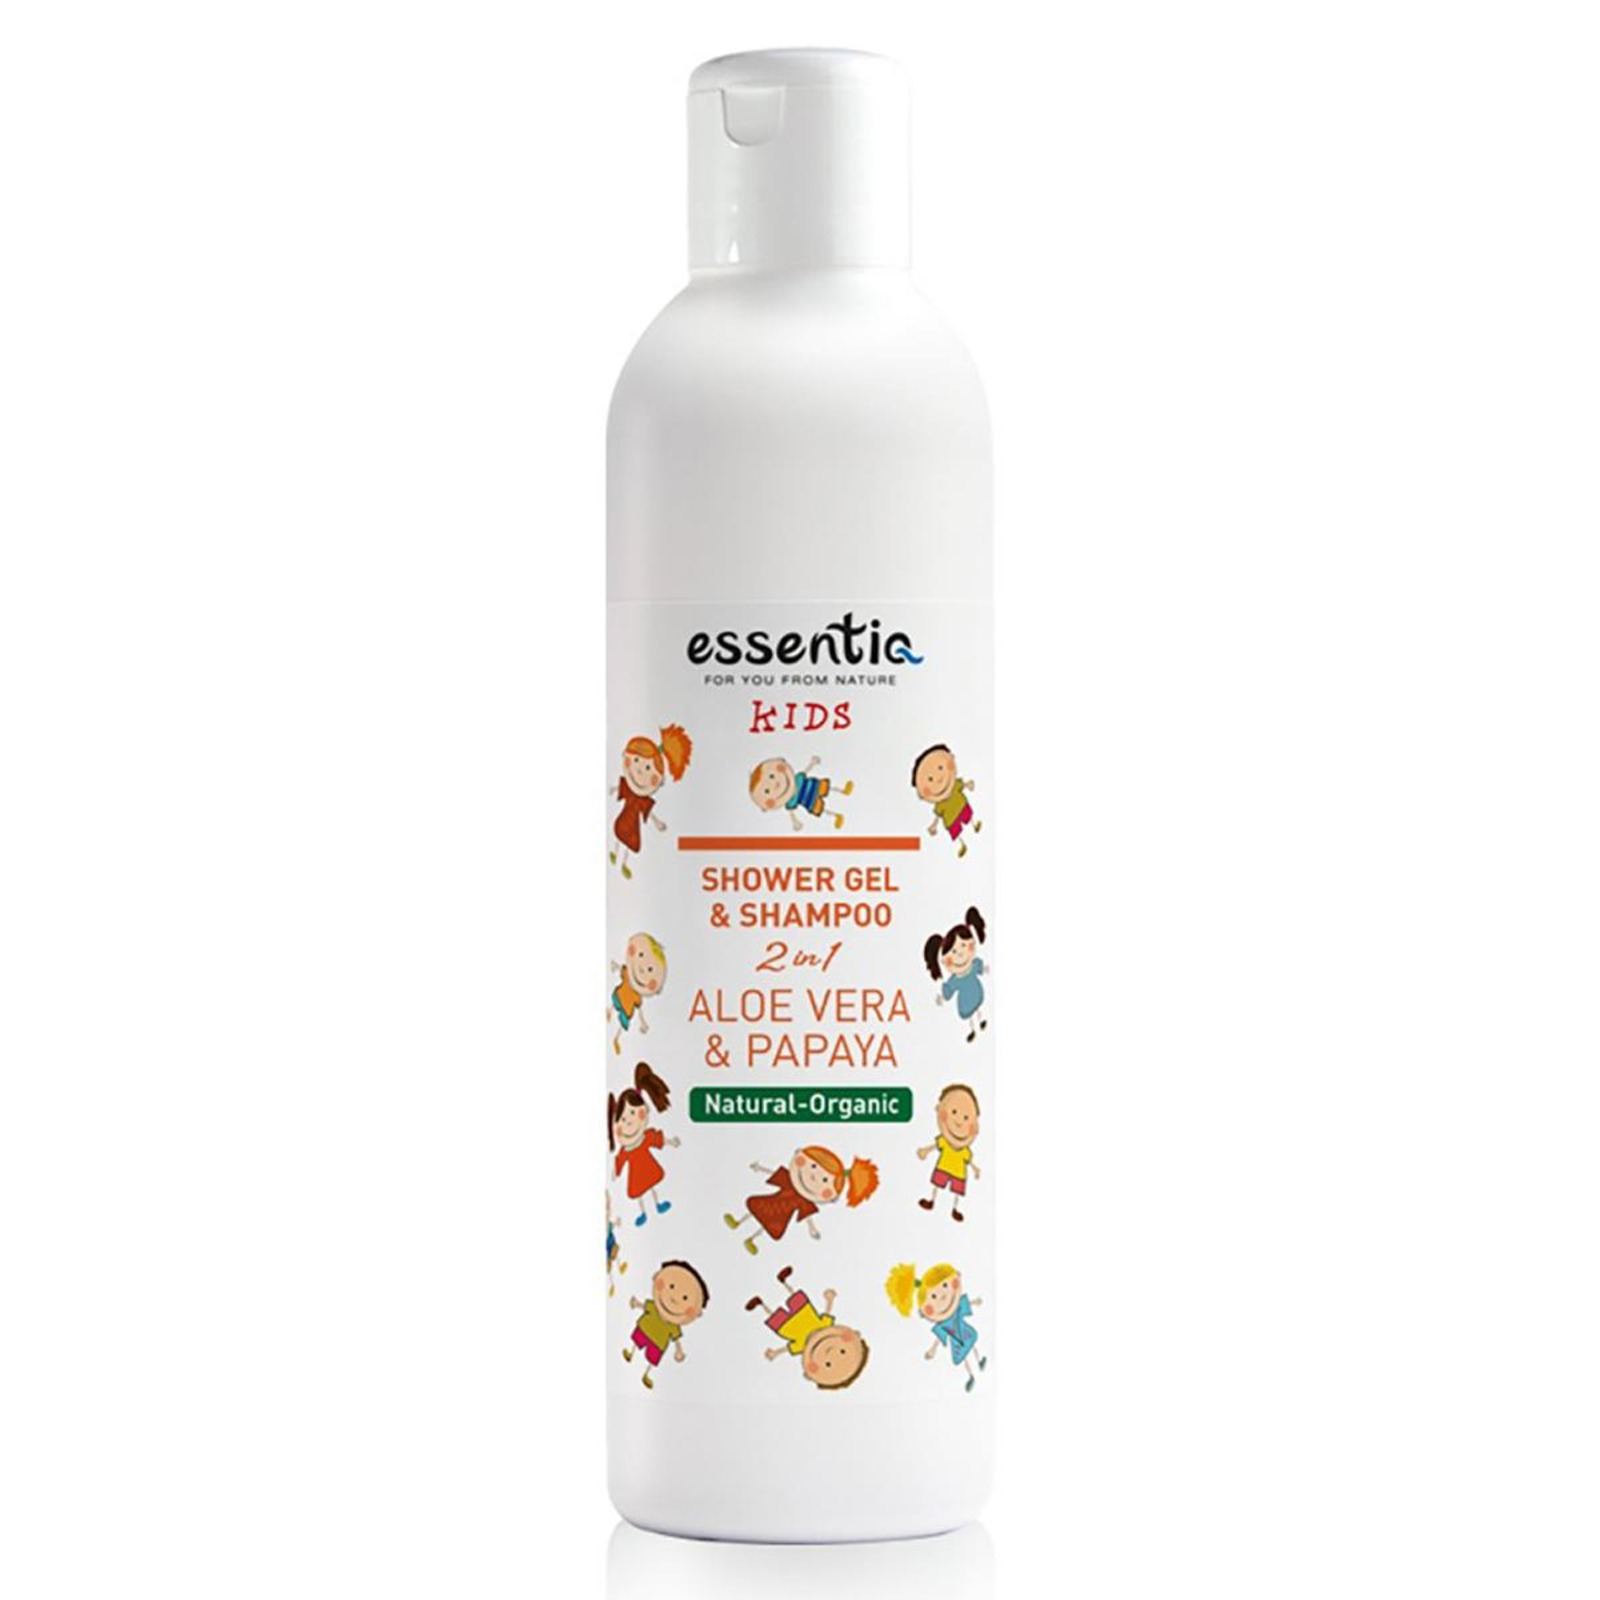 Essentiq Shower Gel and Shampoo Kids 2 in 1 Aloe Vera & Papay